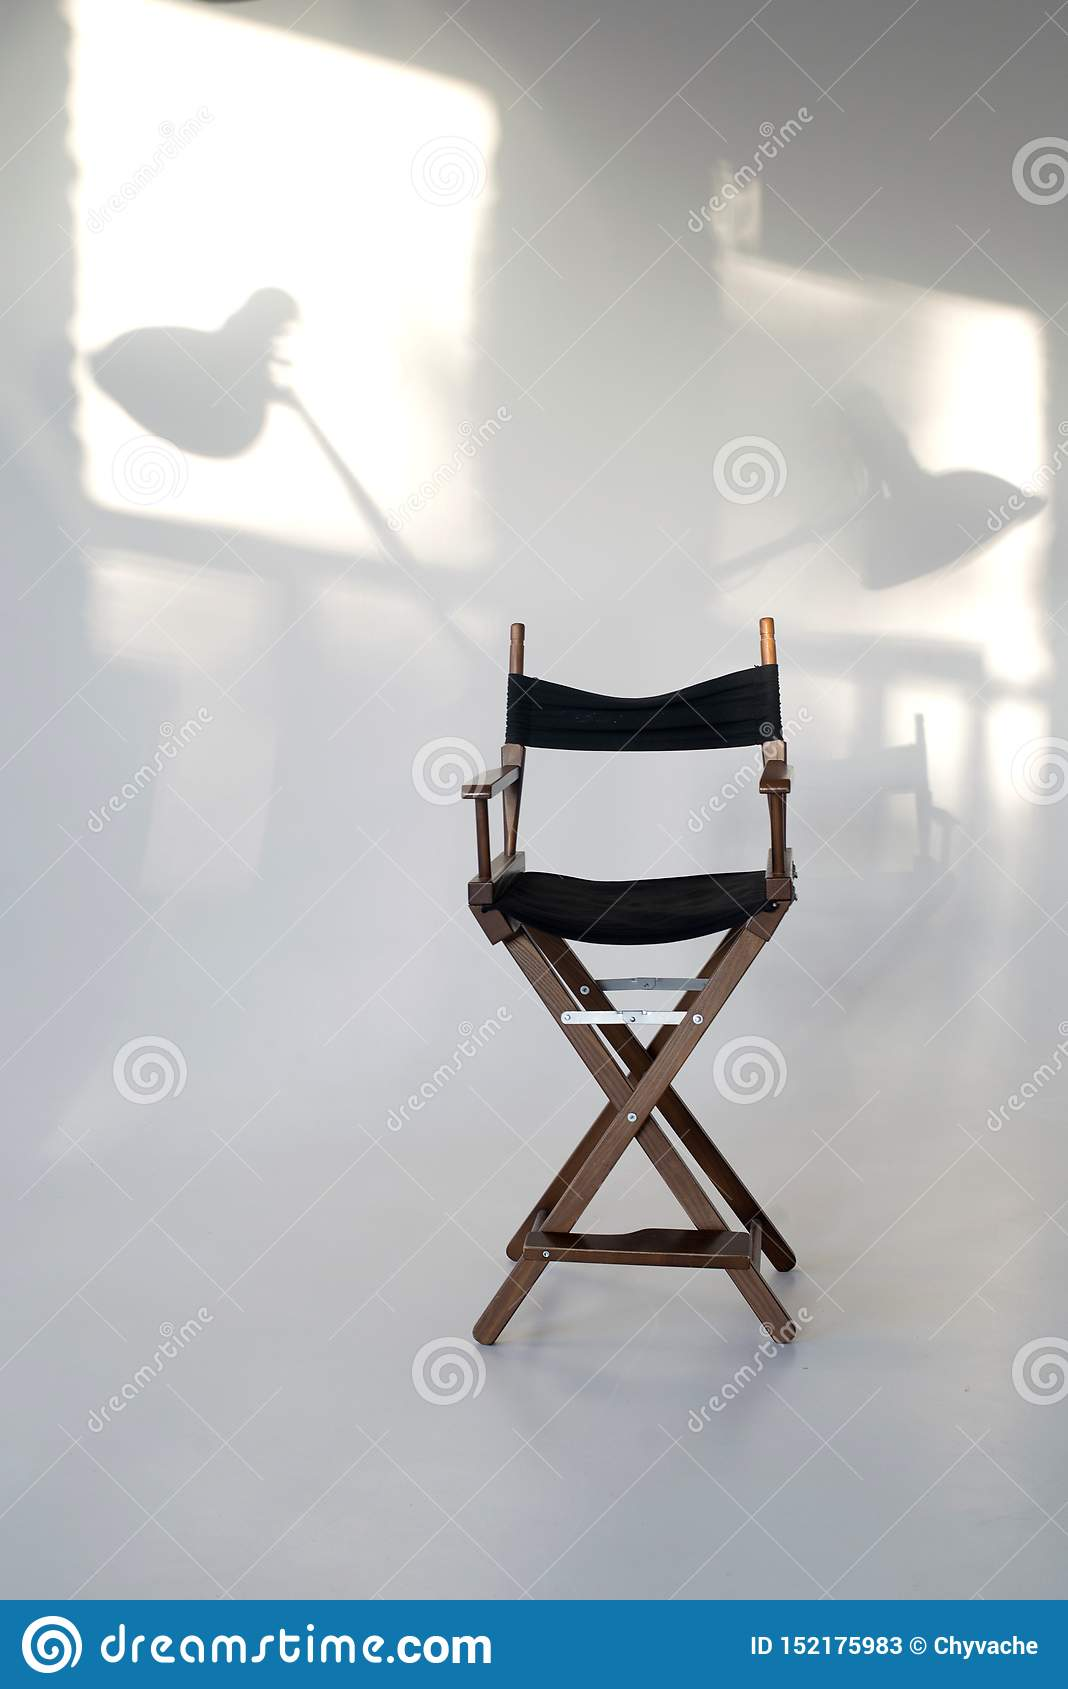 Director`s chair on a white background. shadows on the wall from the sun. light shades